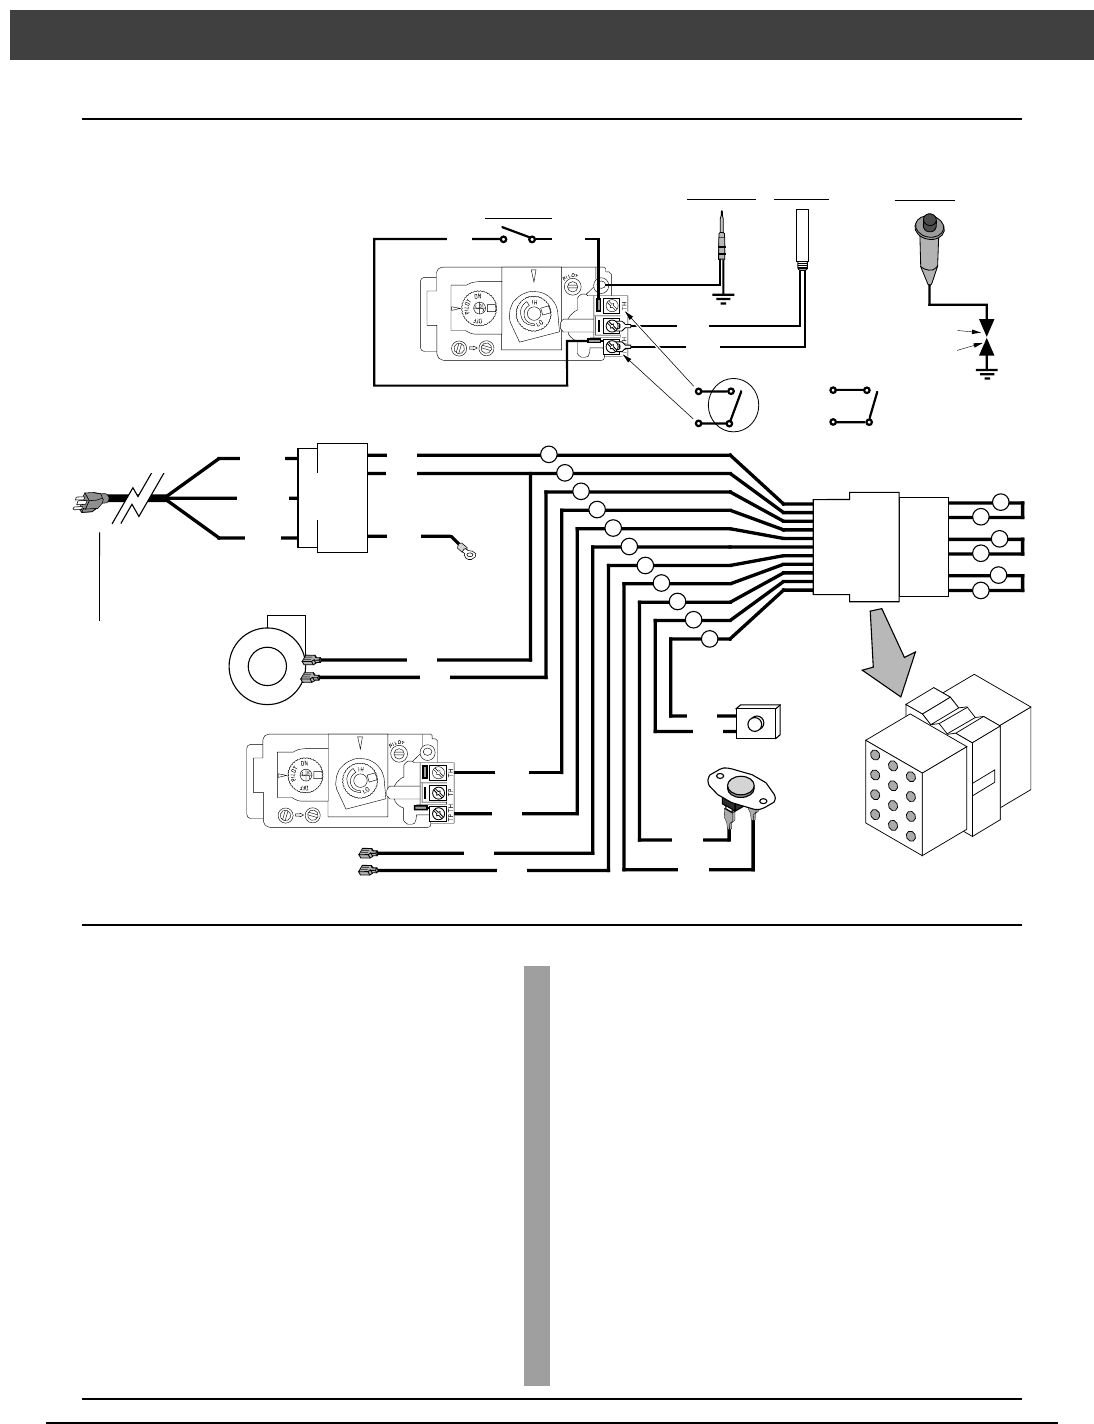 Page 29 of lopi stove direct vent freestanding stove user guide maintenance for qualified service personnel only 29 travis industries 100 01142 4050114 wiring diagram asfbconference2016 Choice Image